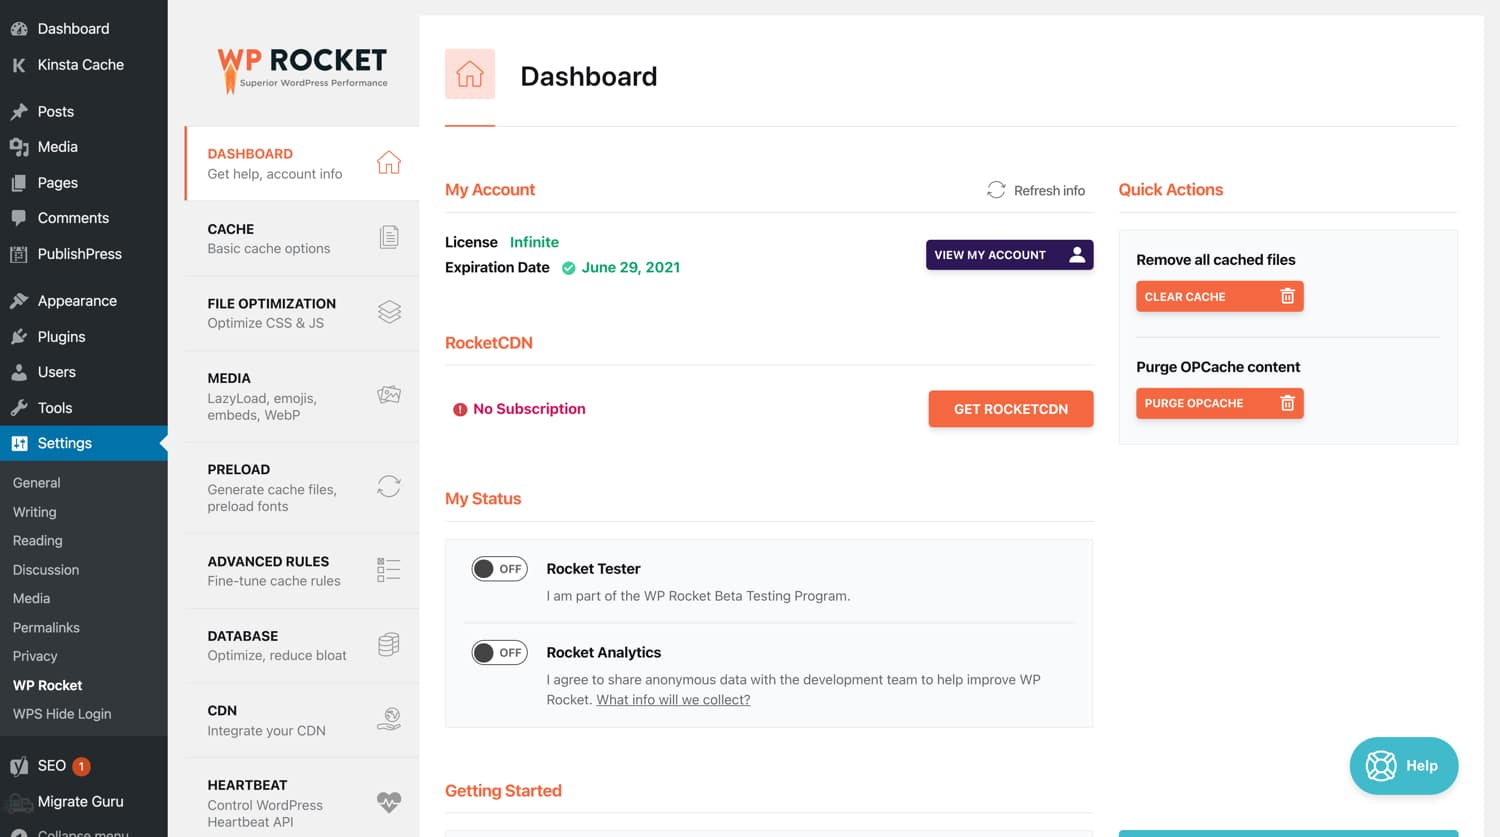 Hoofddashboard WP Rocket